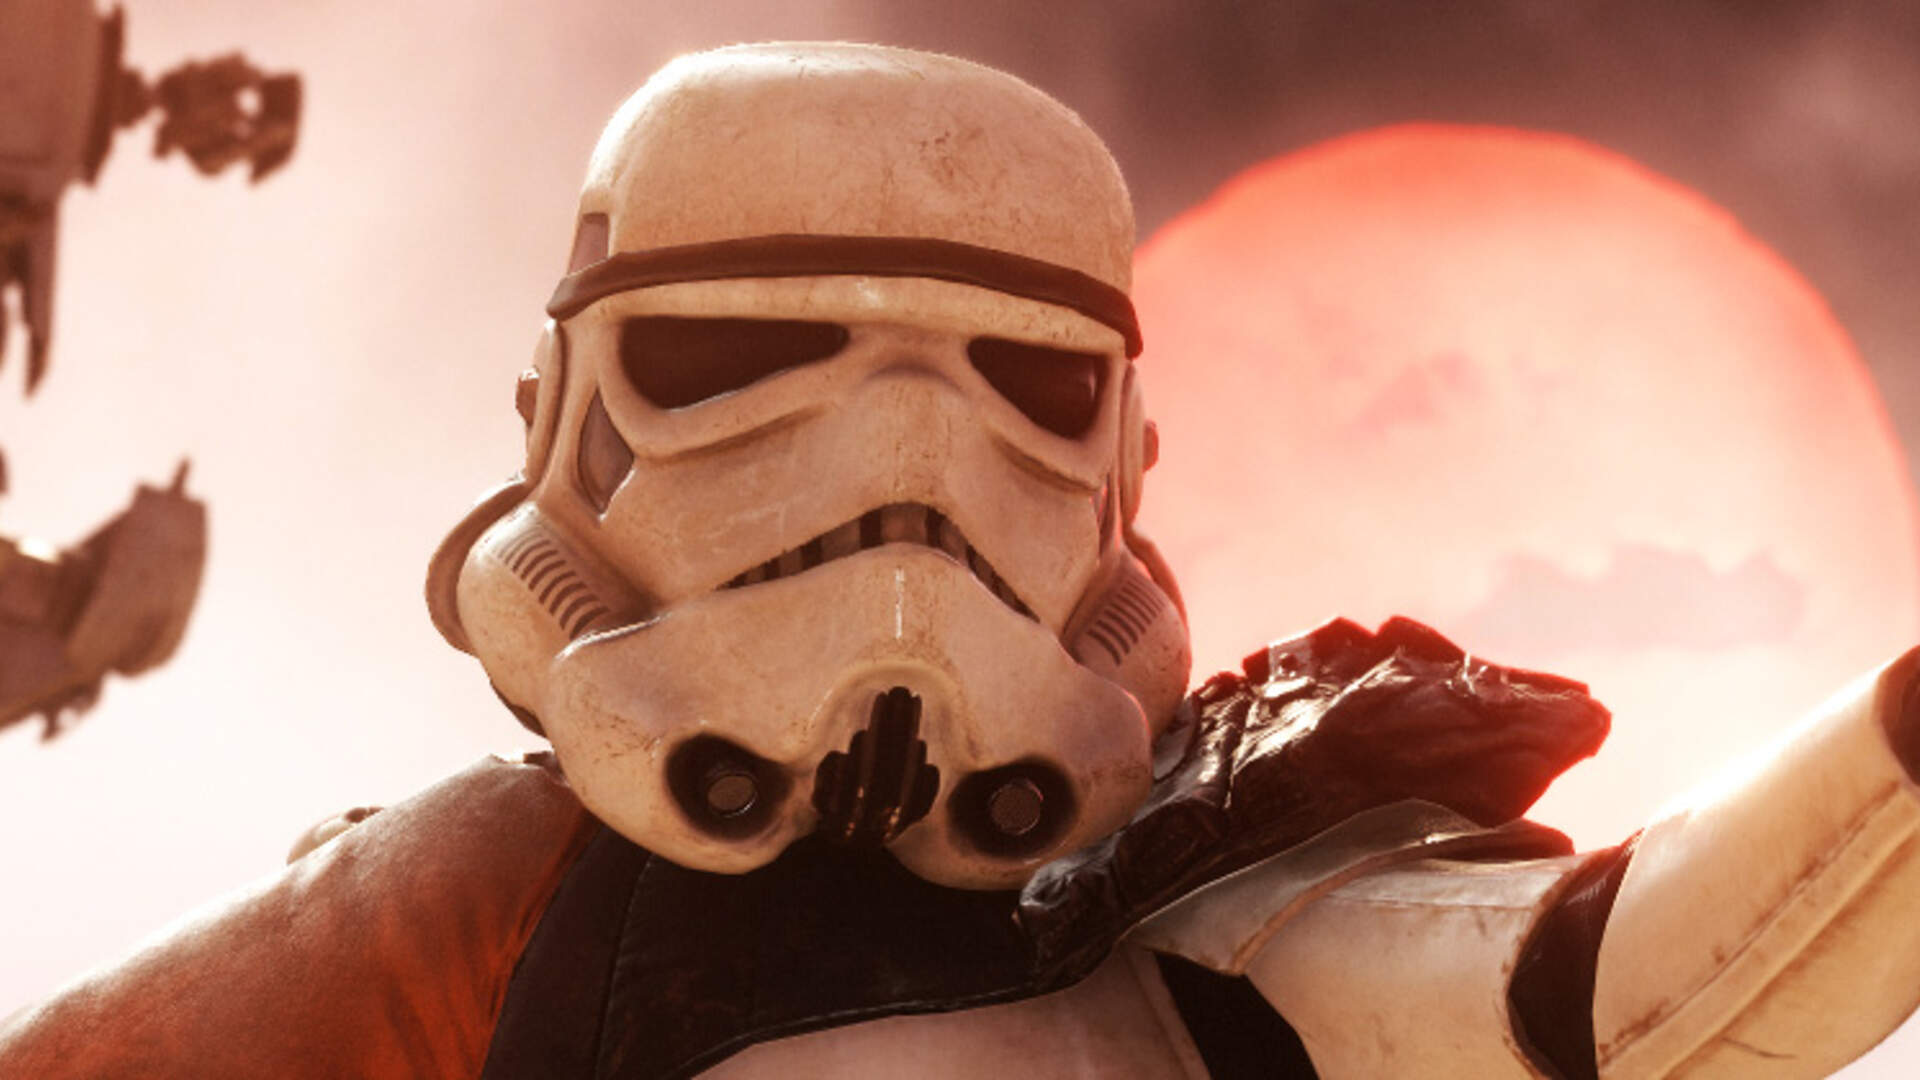 Star Wars: Battlefront Tips - Power Ups, X-Wing, TIE Fighter, AT-AT, AT-ST